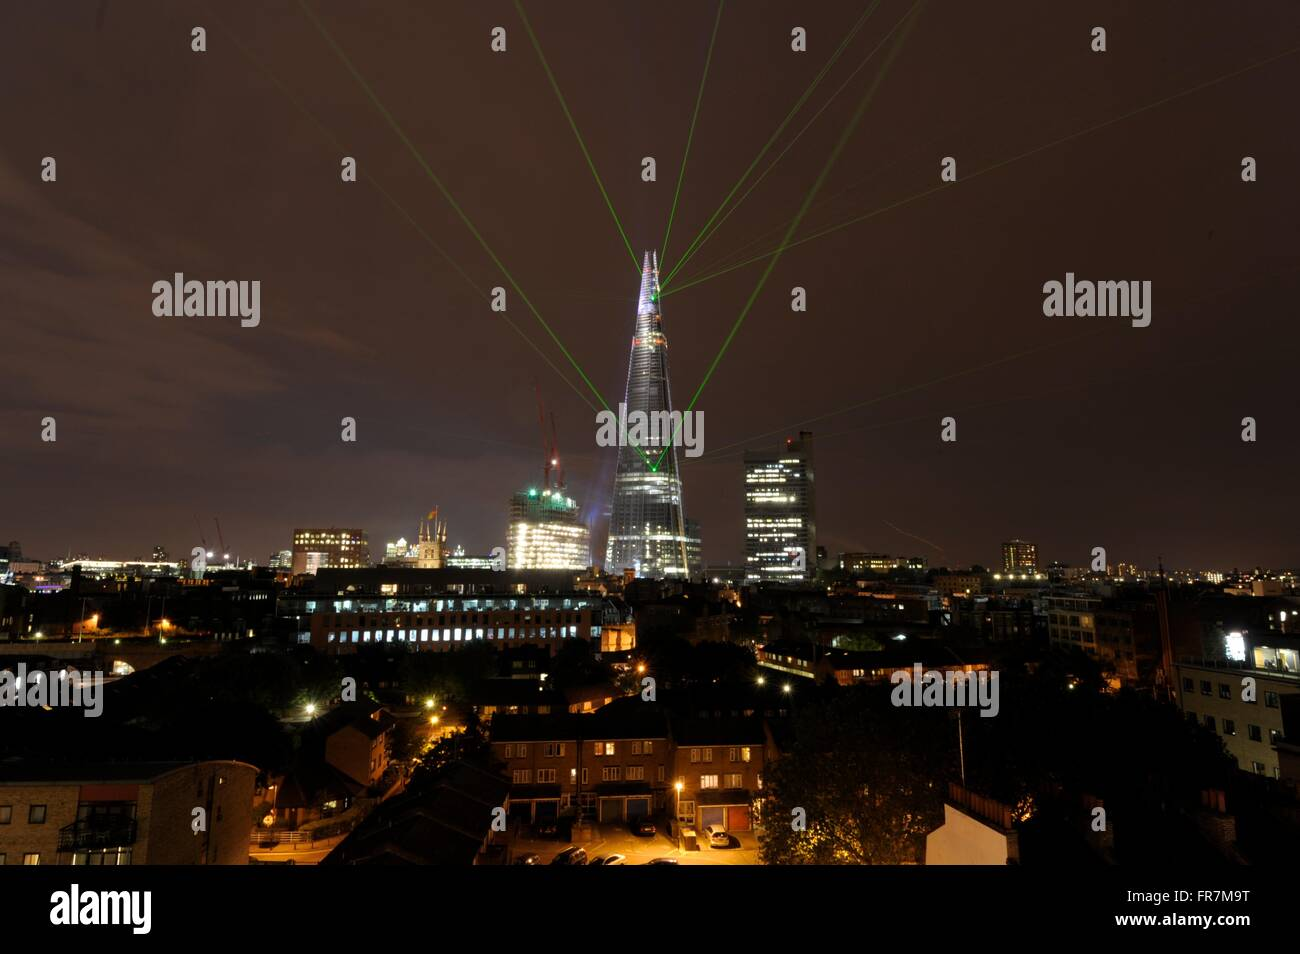 Shard london, laser show to mark completion of external works